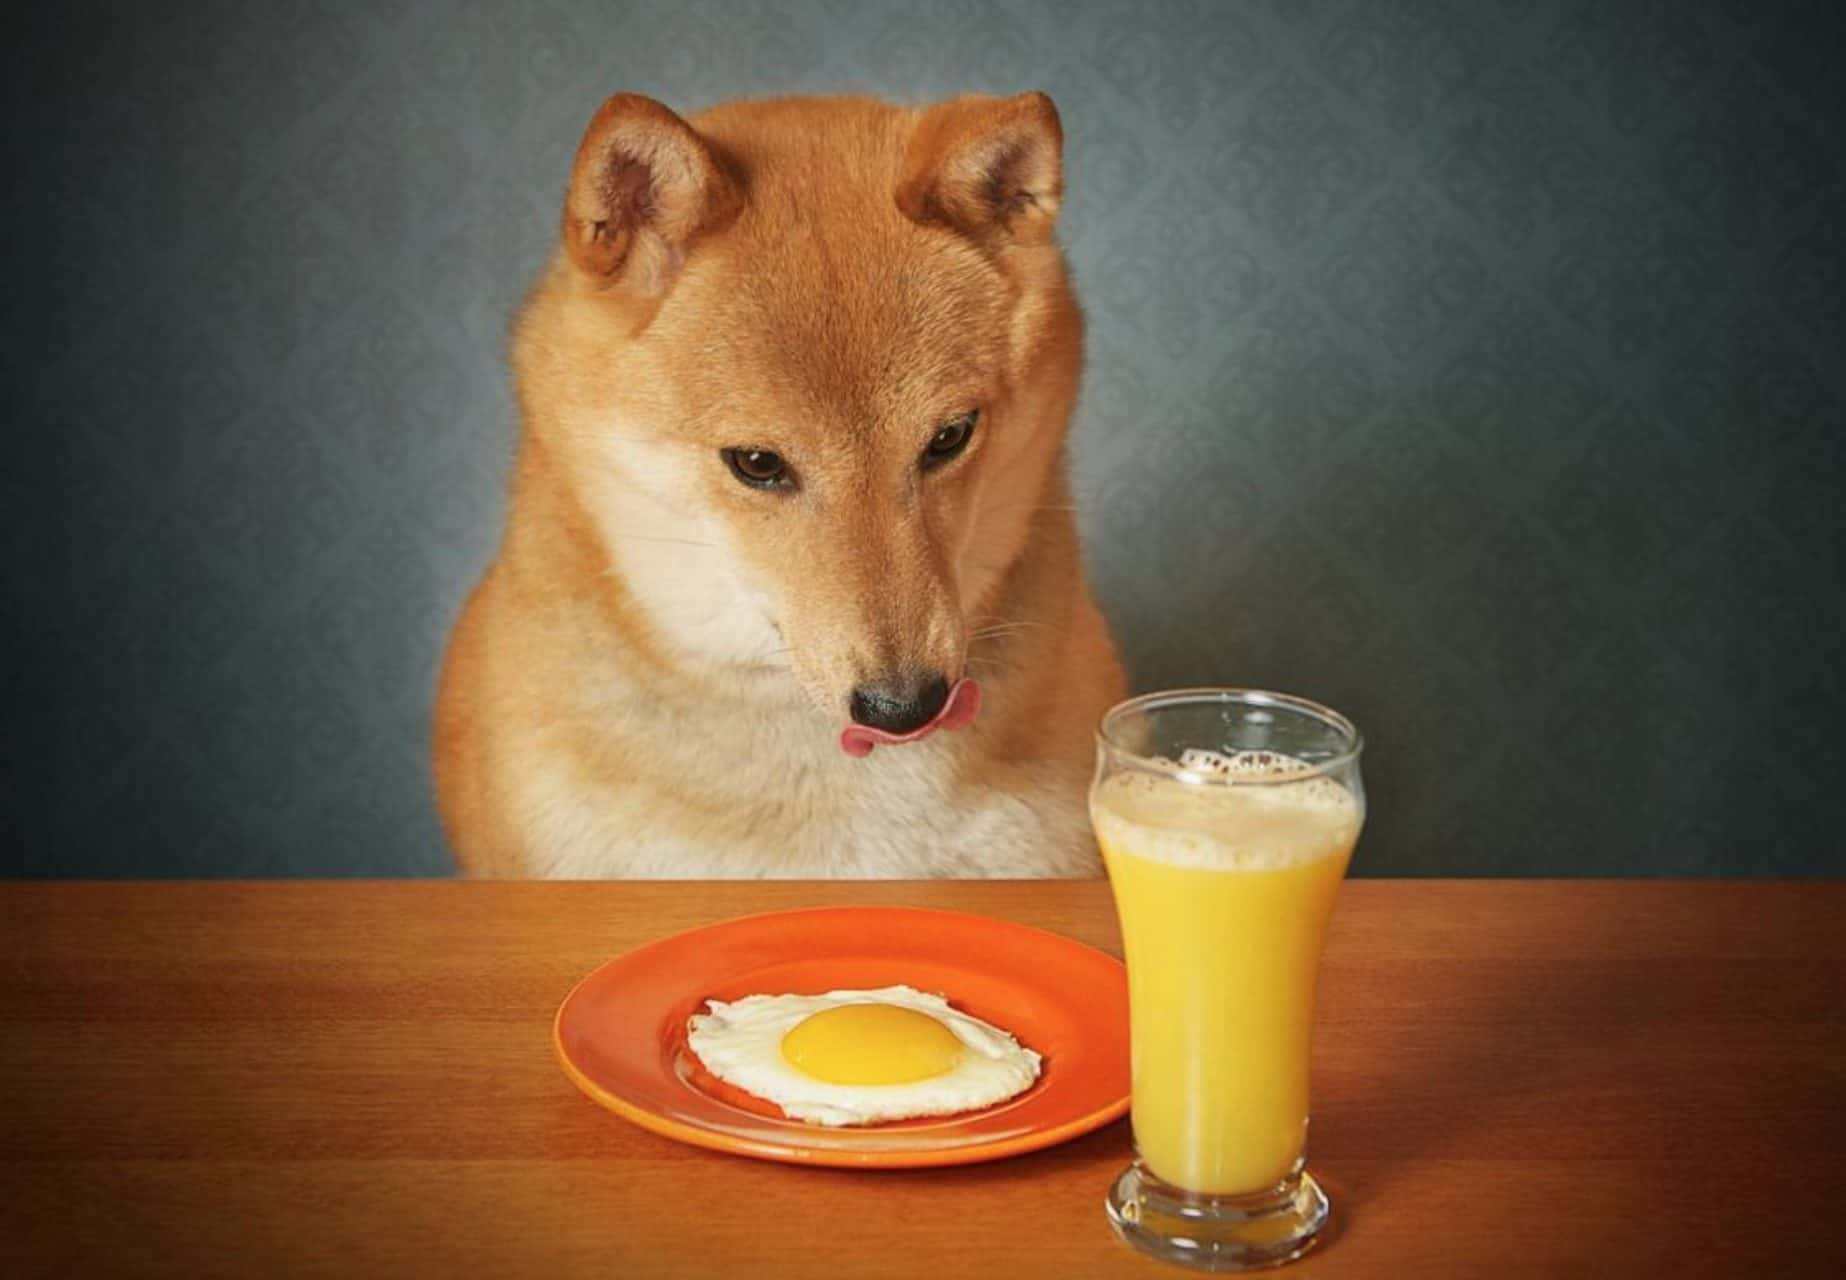 Can dogs eat eggs? And, are eggs safe for dogs?